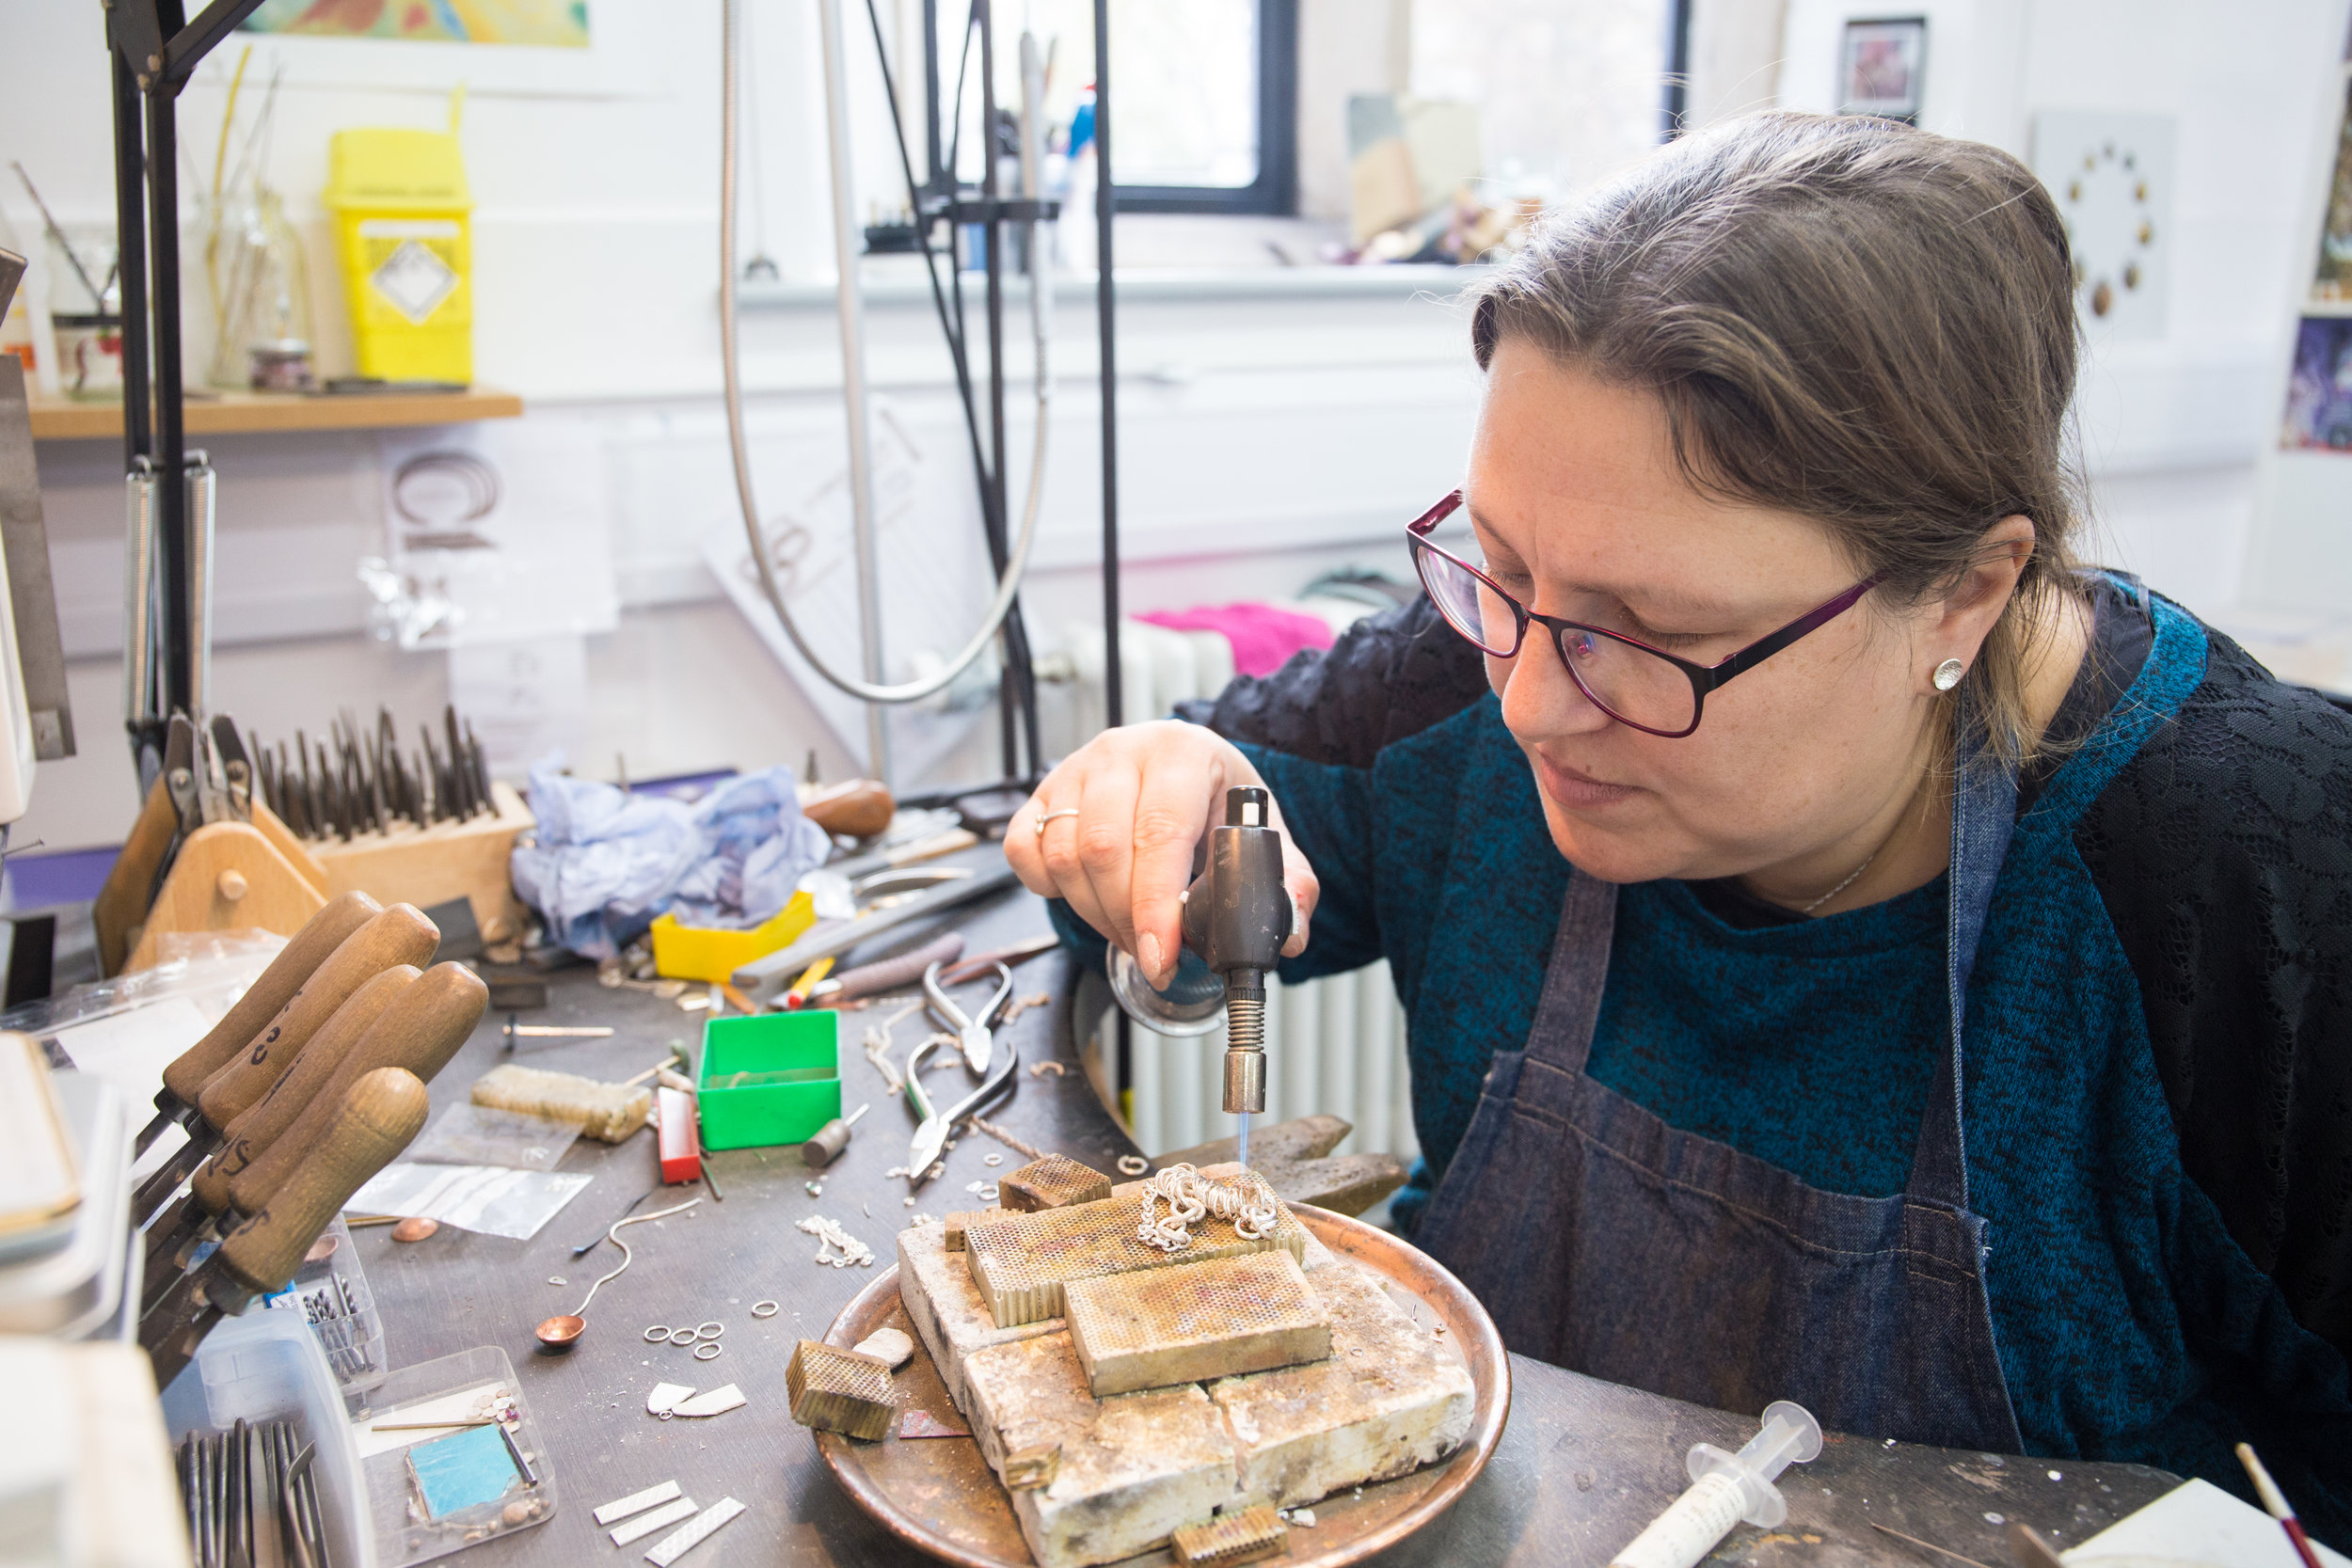 Sarah Pasley, Silversmith & Jeweller - SARAH IS A JEWELLER BY DAY AND AN AWARD WINNING SILVERSMITH IN HER SPARE TIME. SHE CRAFTS COMMERCIALLY FOCUSED JEWELLERY INSPIRED BY THE RESEARCH AND SKILLS SHE DEVELOPED WHILST DESIGNING AND MAKING HER LARGE METAL WORKS.